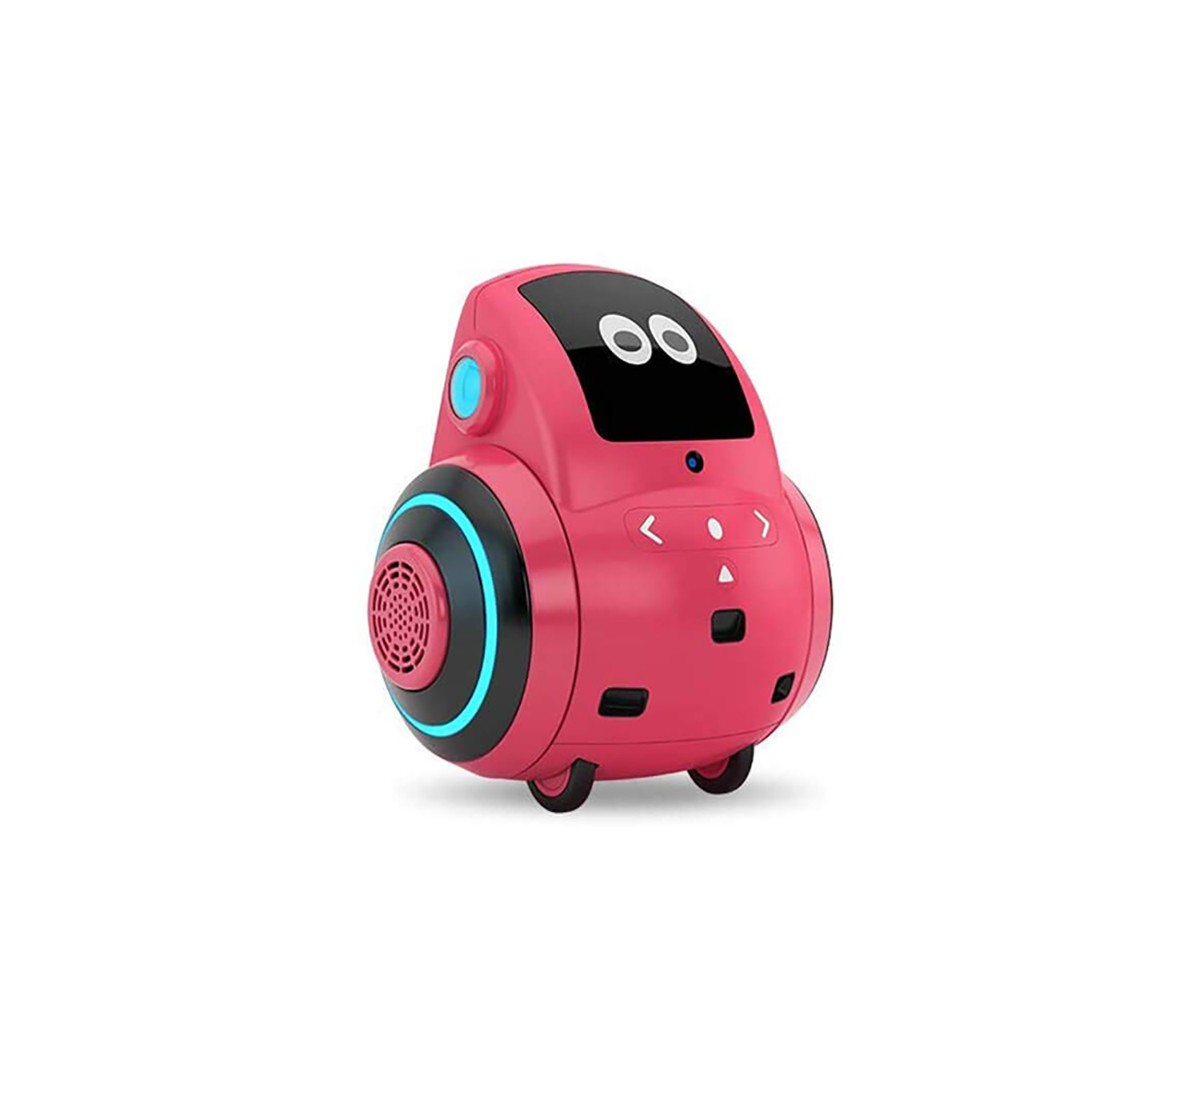 Miko 2 My Companion Robot - Red Robotics for Kids age 5Y+ (Red)